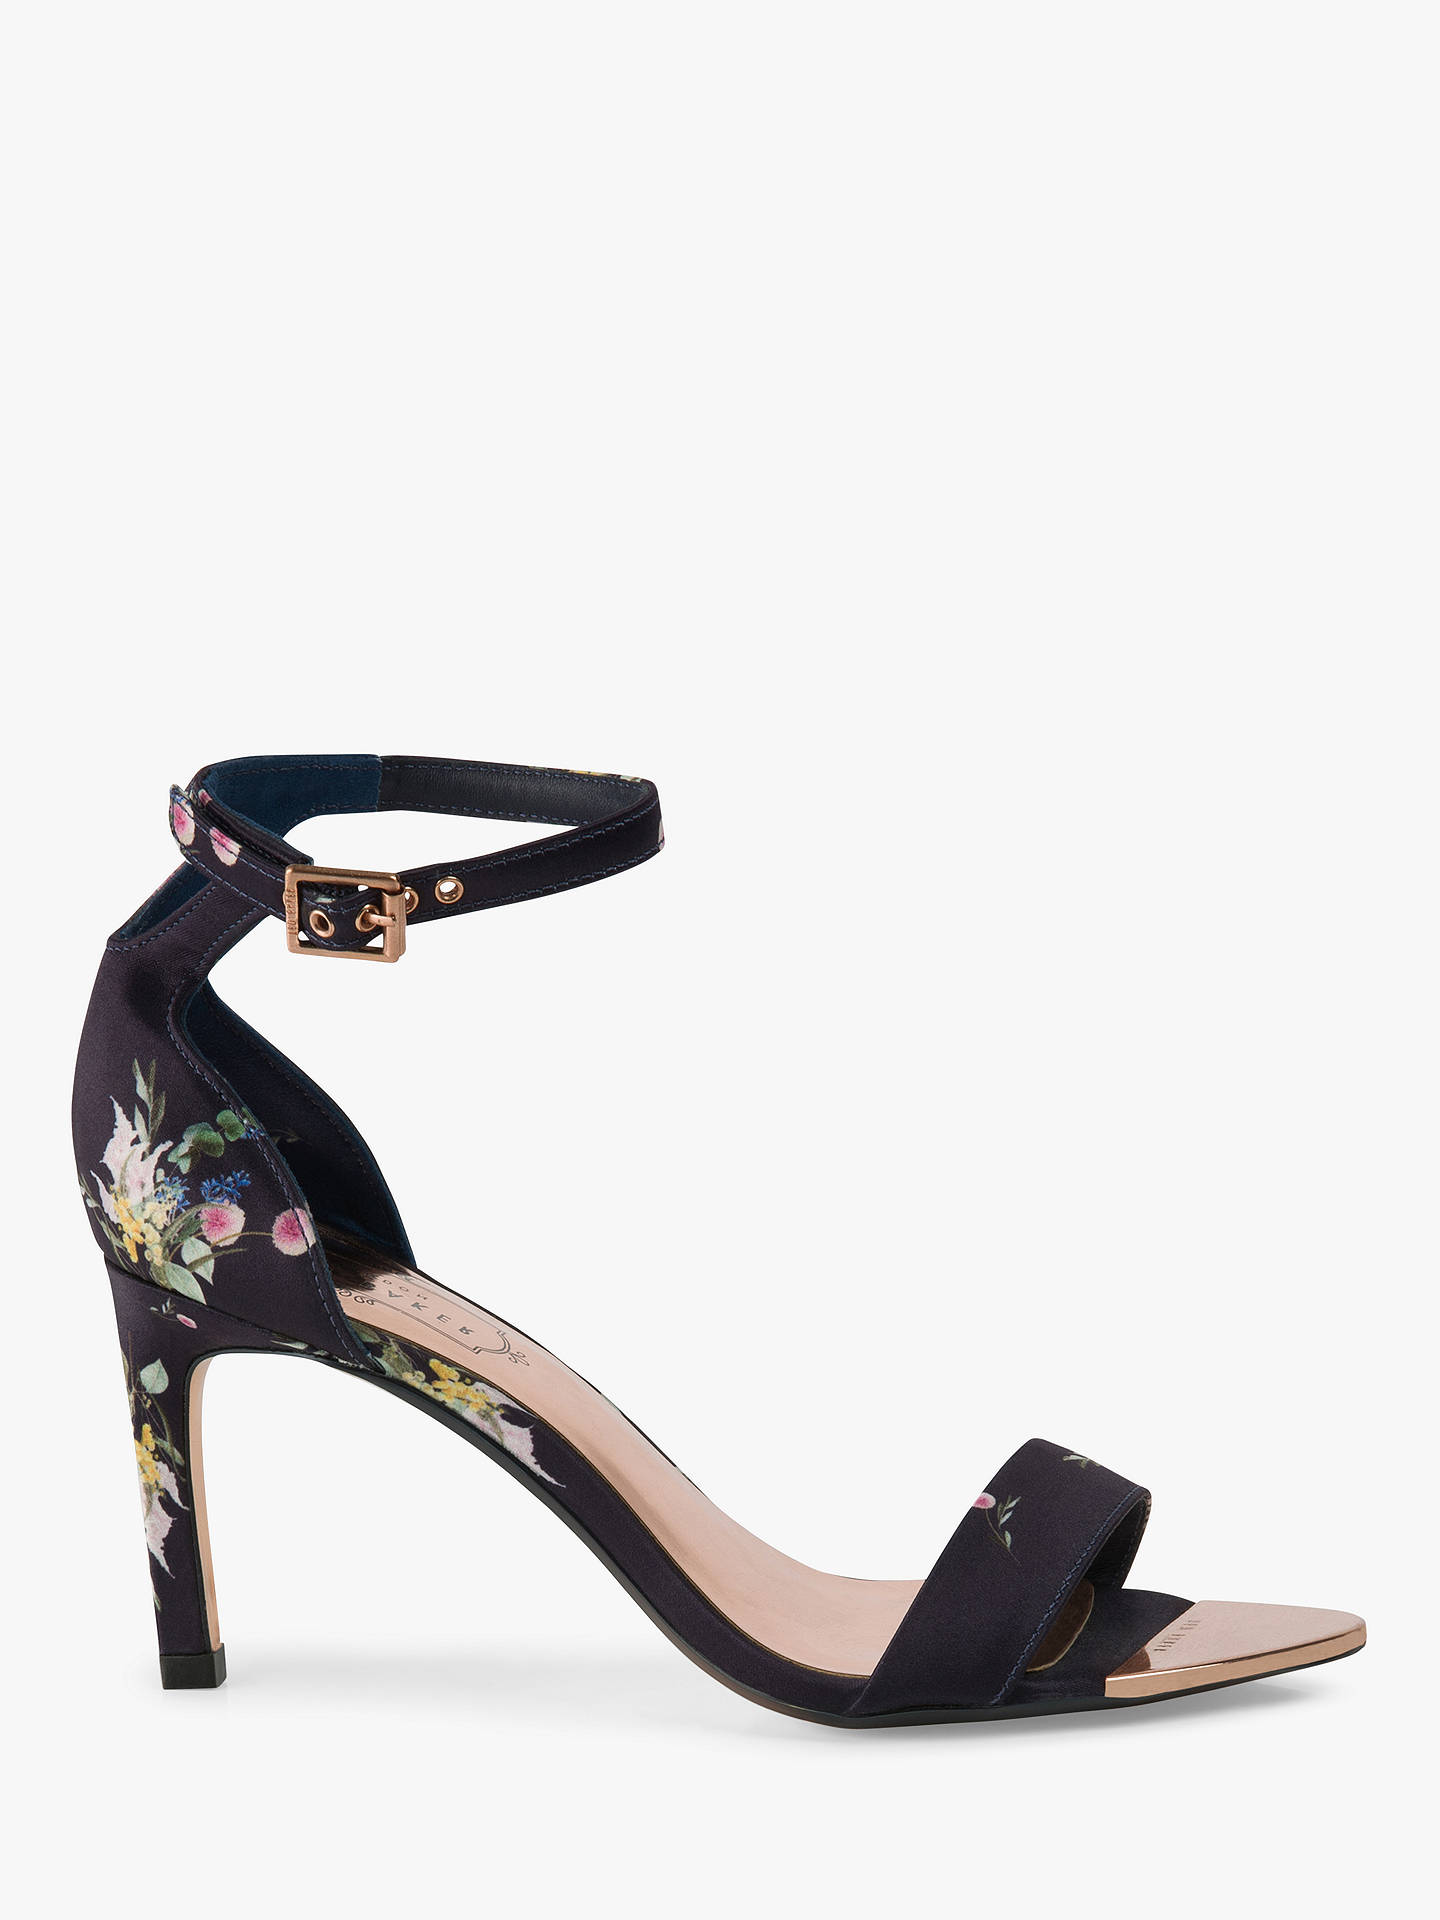 16156f954 Buy Ted Baker Ulaniip Stiletto Heel Sandals